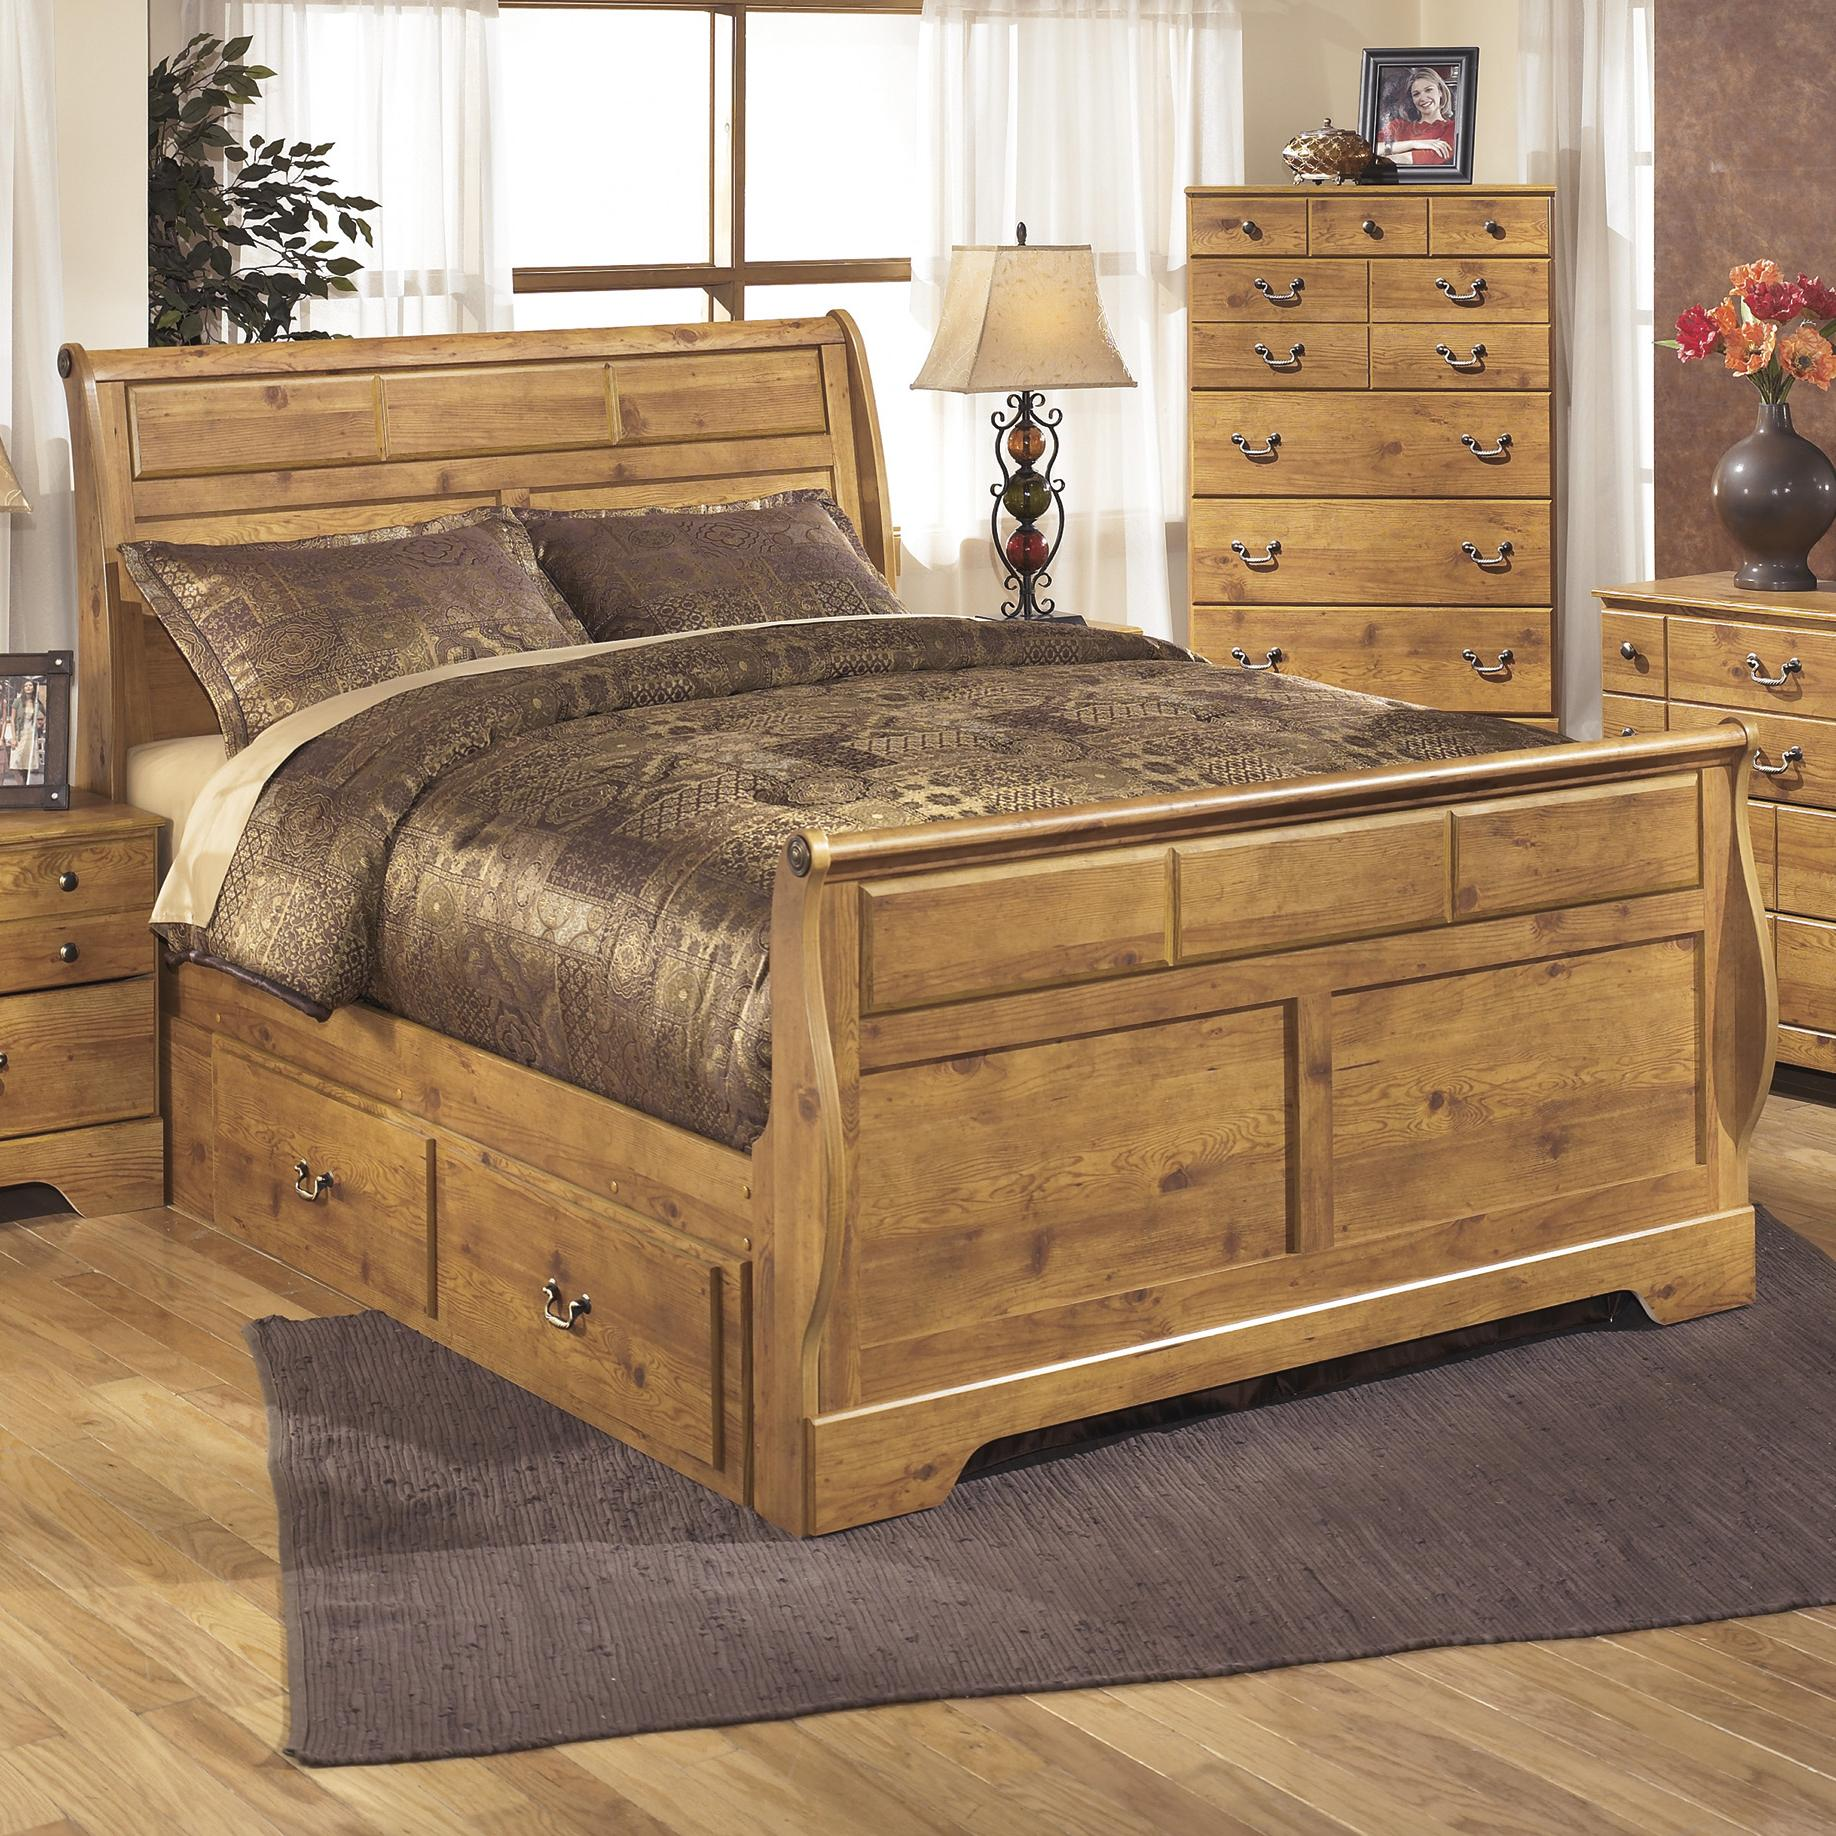 Signature Design by Ashley Bittersweet Queen Sleigh Bed with Under Bed Storage - Item Number: B219-65+63+86+50